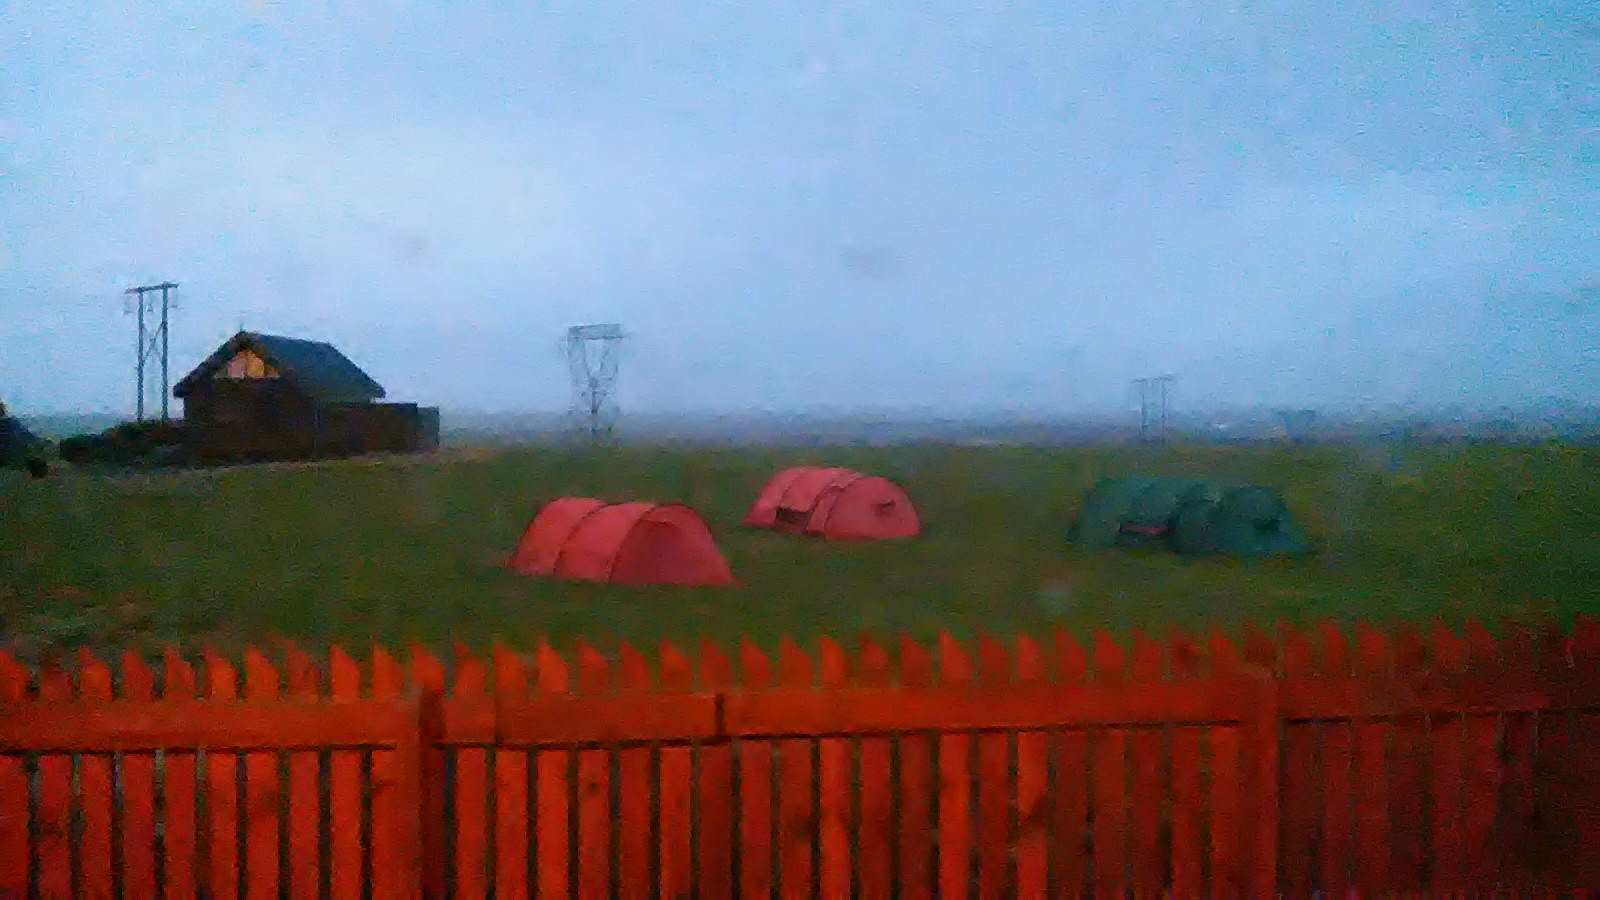 After a stormy night the tents are still where they should be at dawn